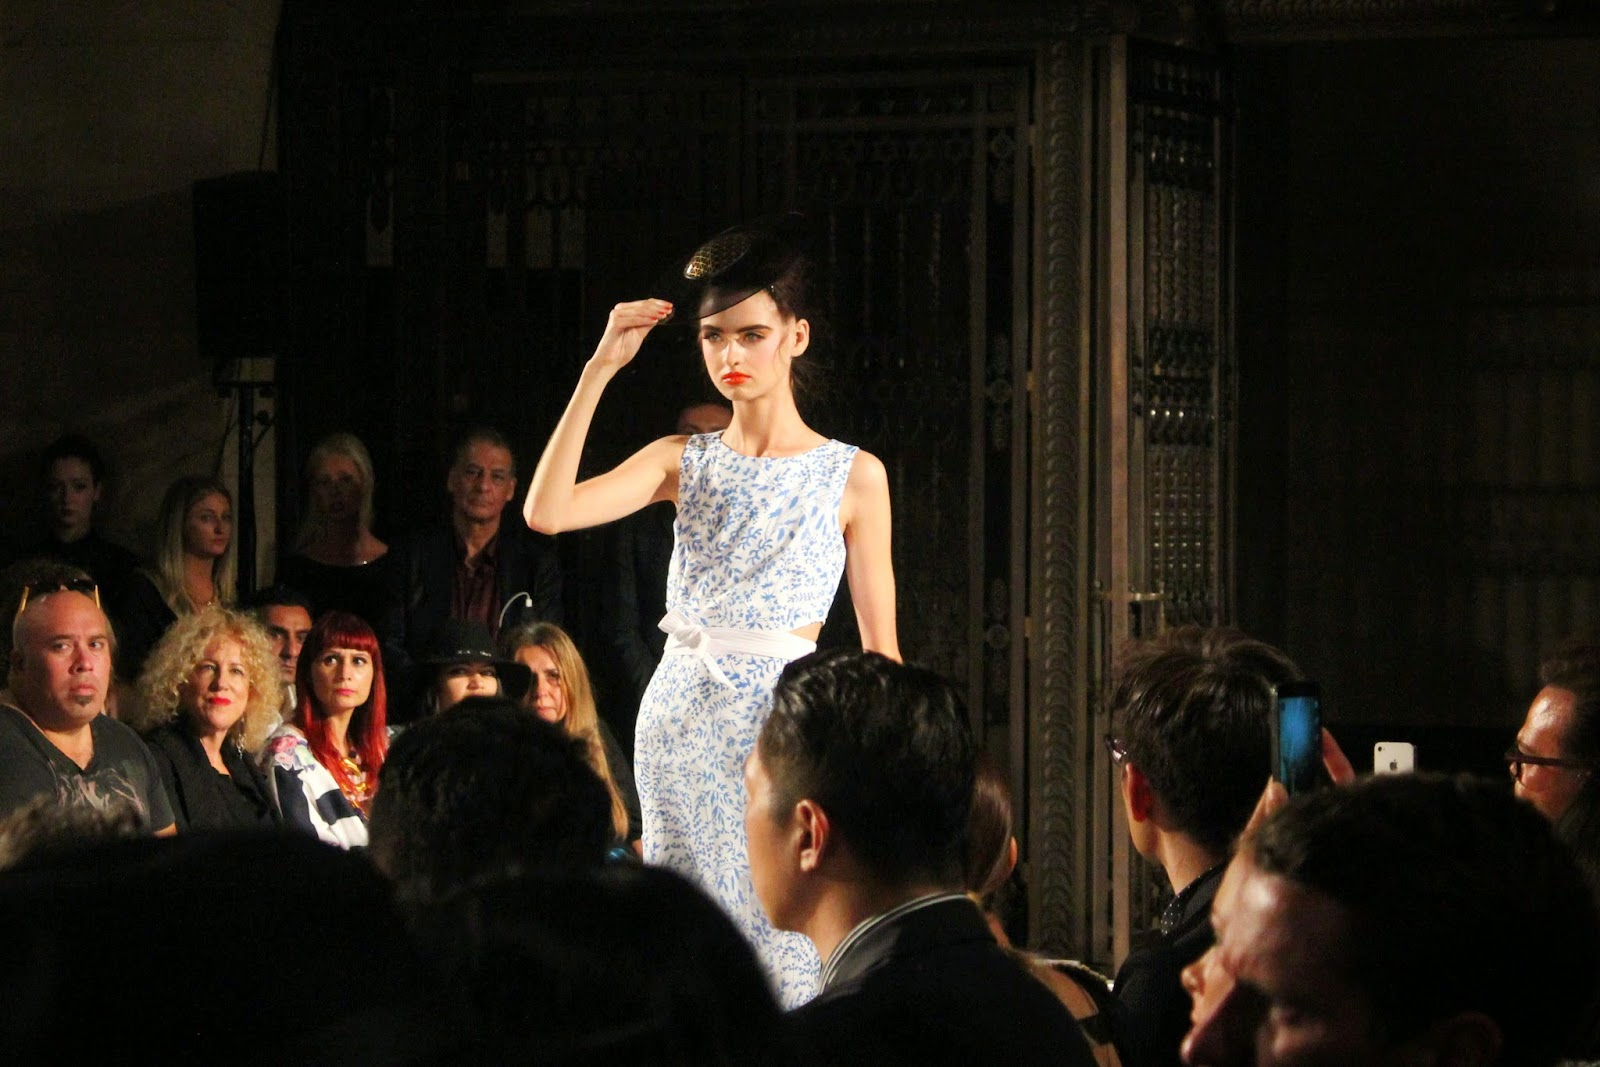 london-fashion-week-2014-lfw-spring-summer-2015-blogger-fashion-freemasons hall-fashion-scout-ashley-isham-catwalk-models-top-skirt